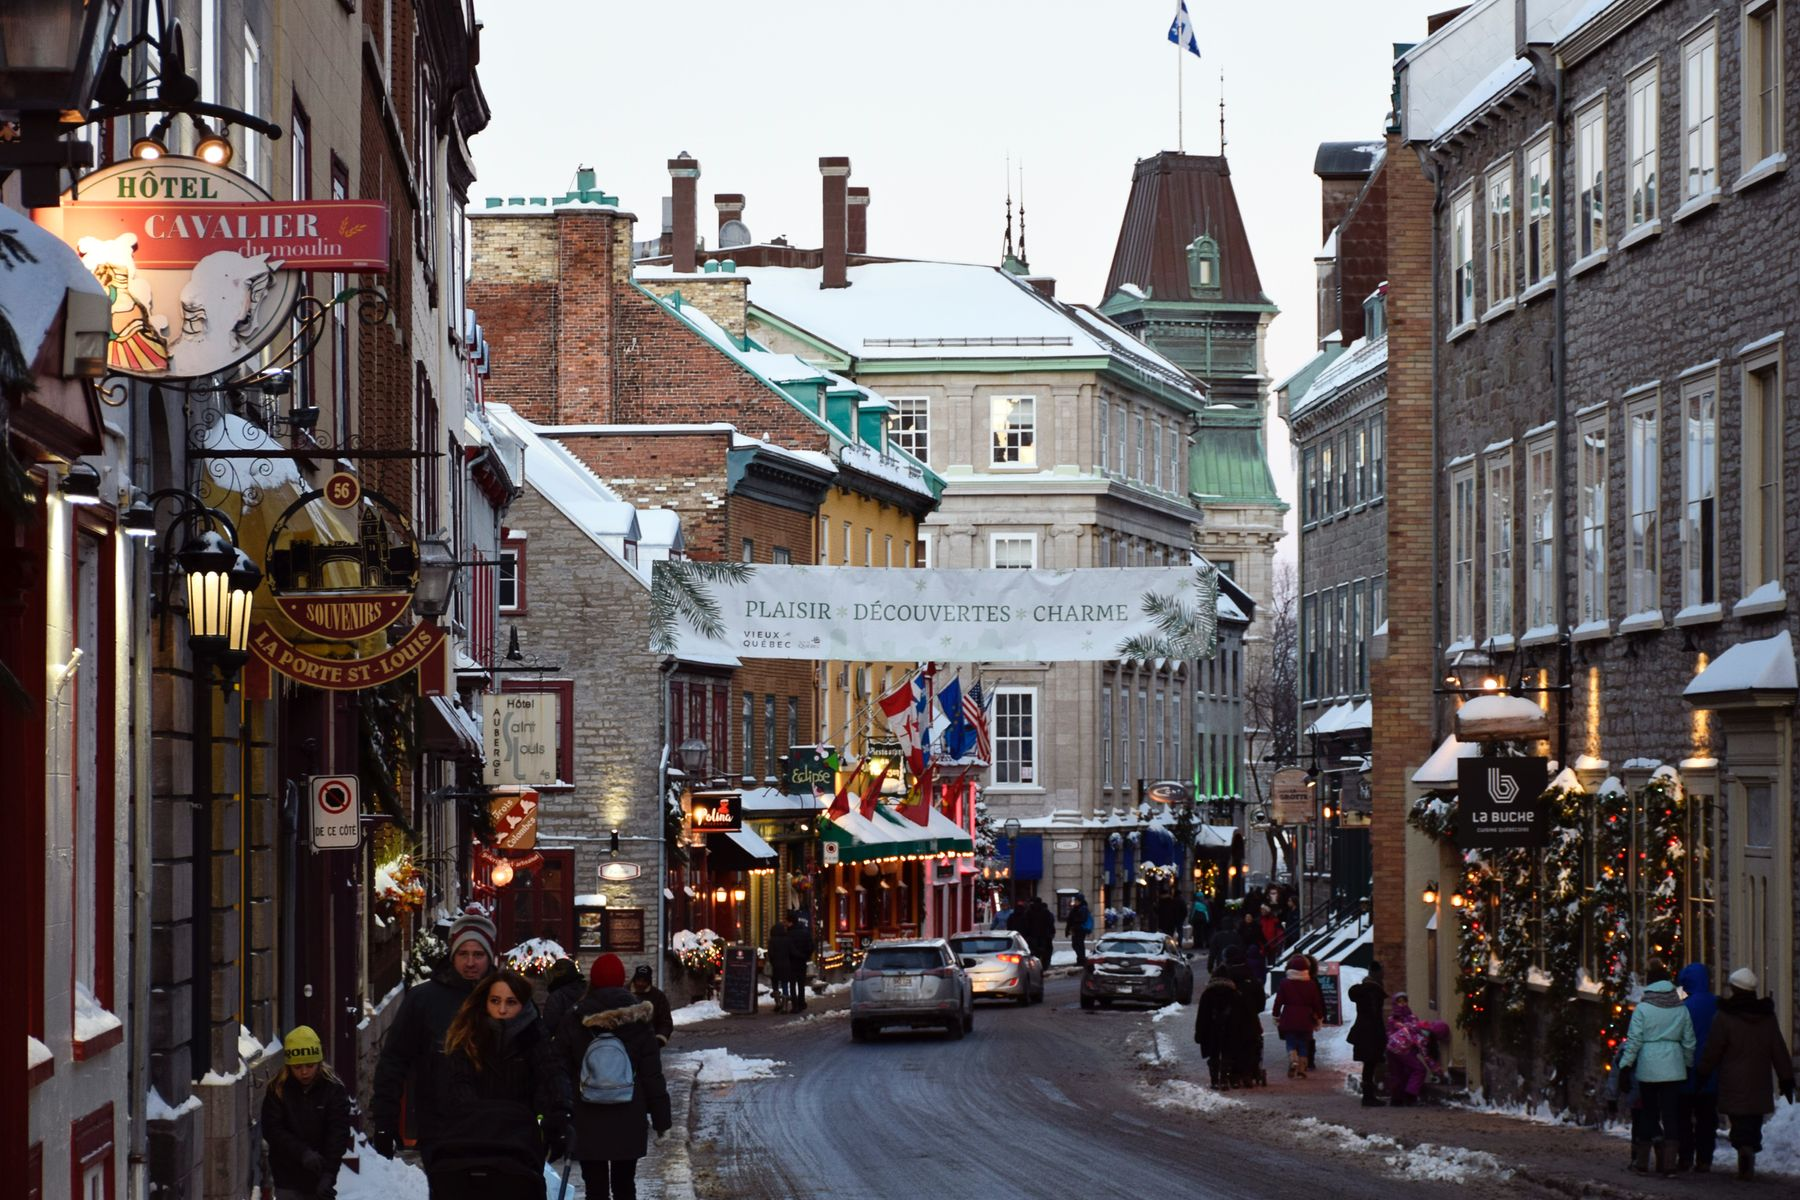 tourists walking along a commercial street in Old Quebec in winter